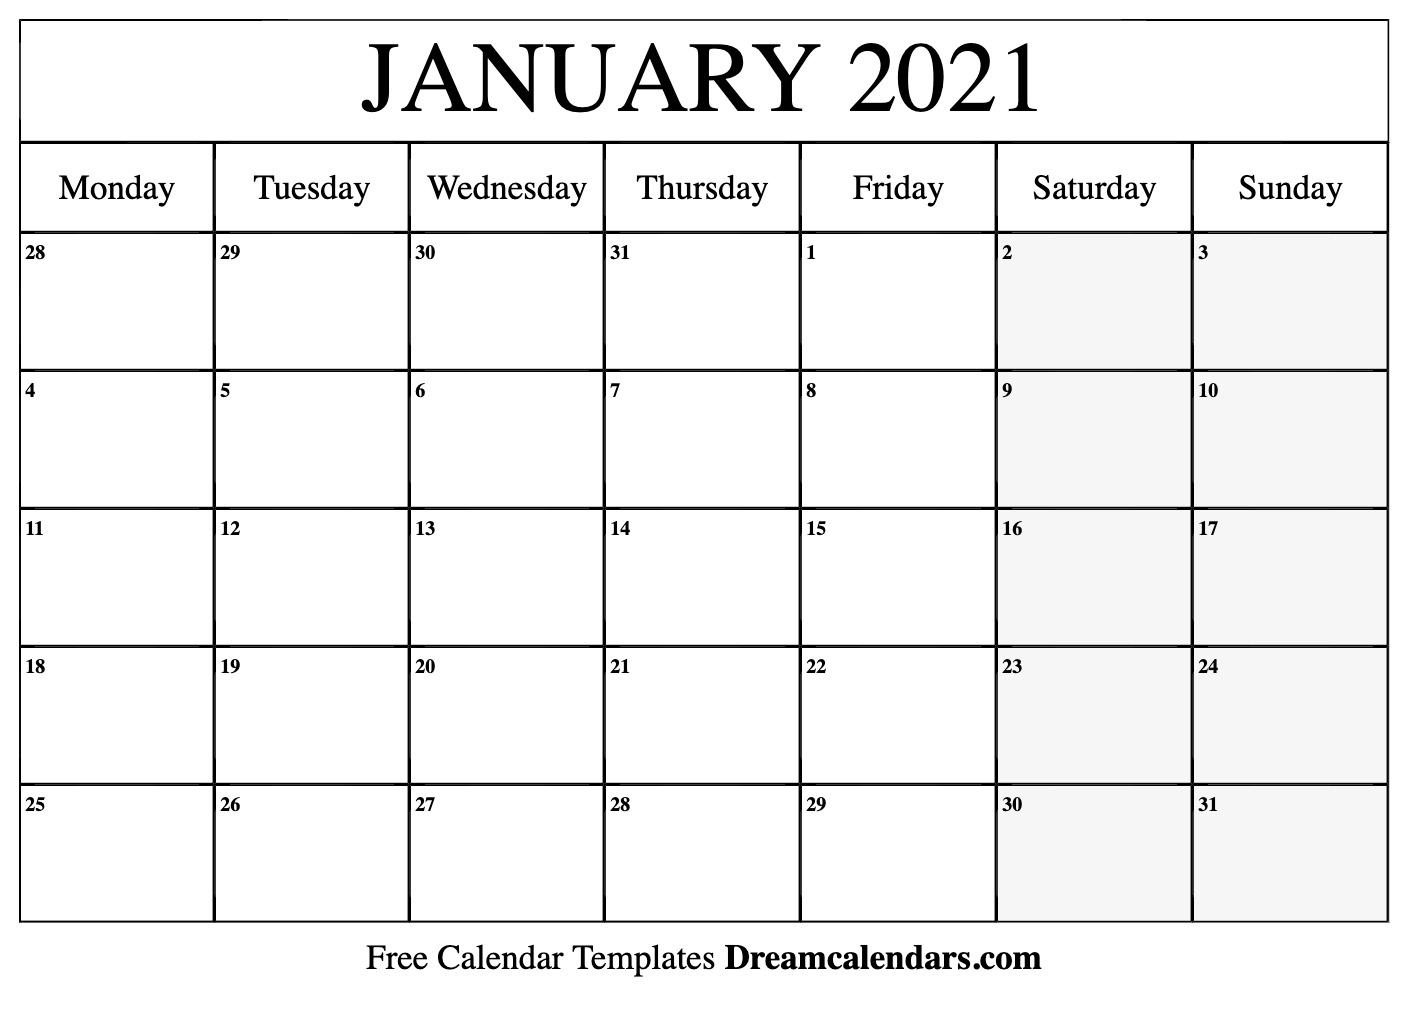 January 2021 Printable Calendar | Dream Calendars